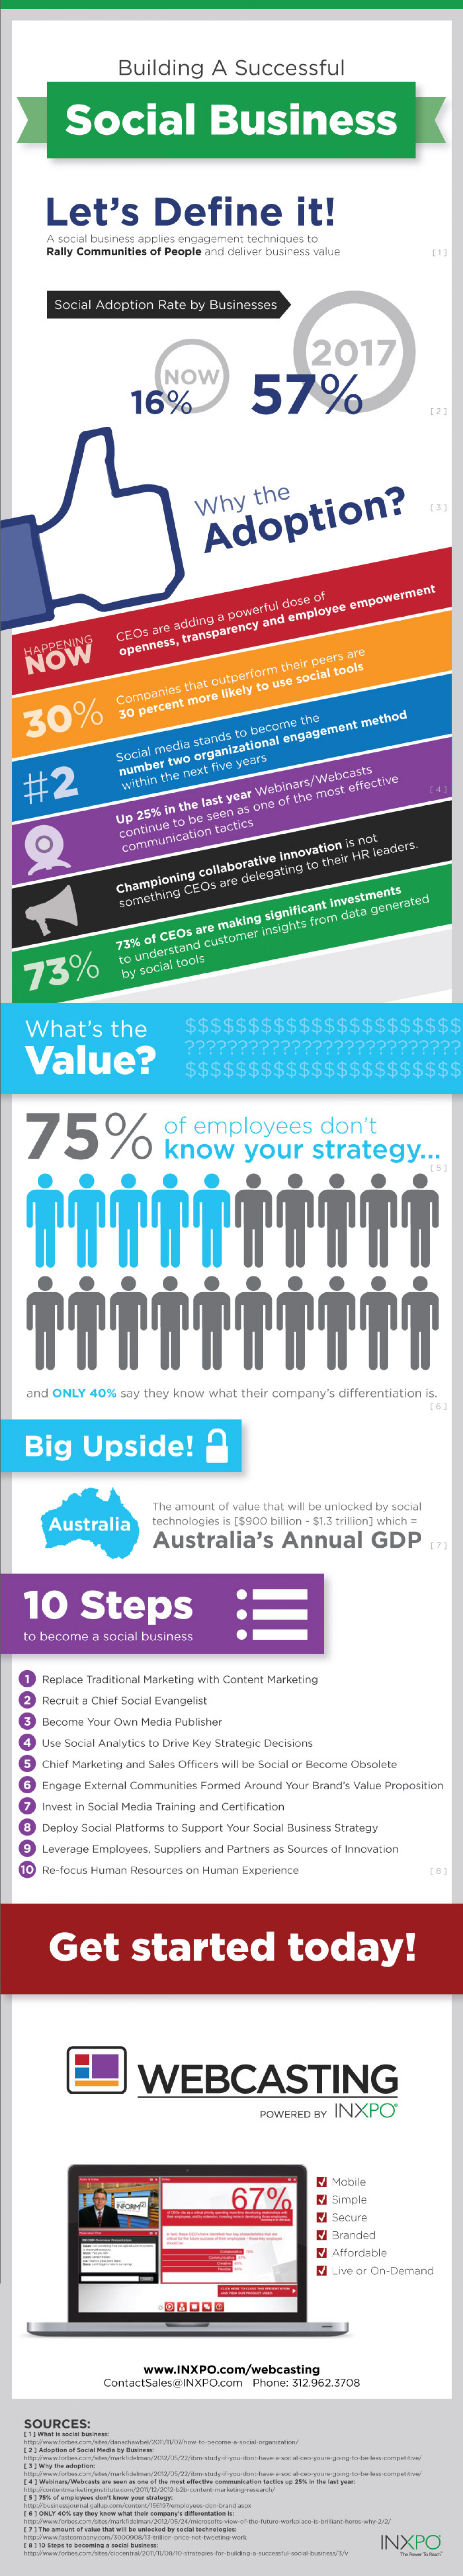 Building a Successful Social Business Infographic